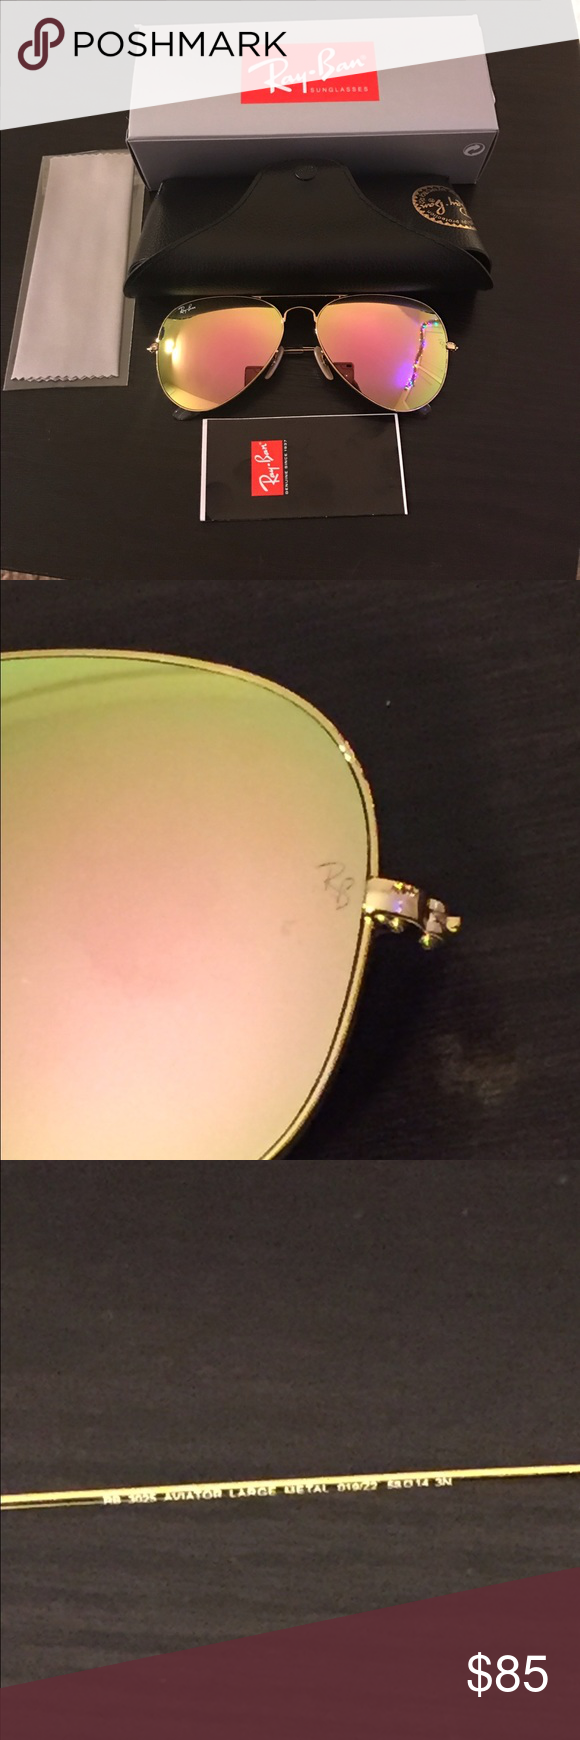 188b4dda23 Ray-Ban Aviator copper flash lens with gold frame BRAND NEW 100% AUTHENTIC  RAY